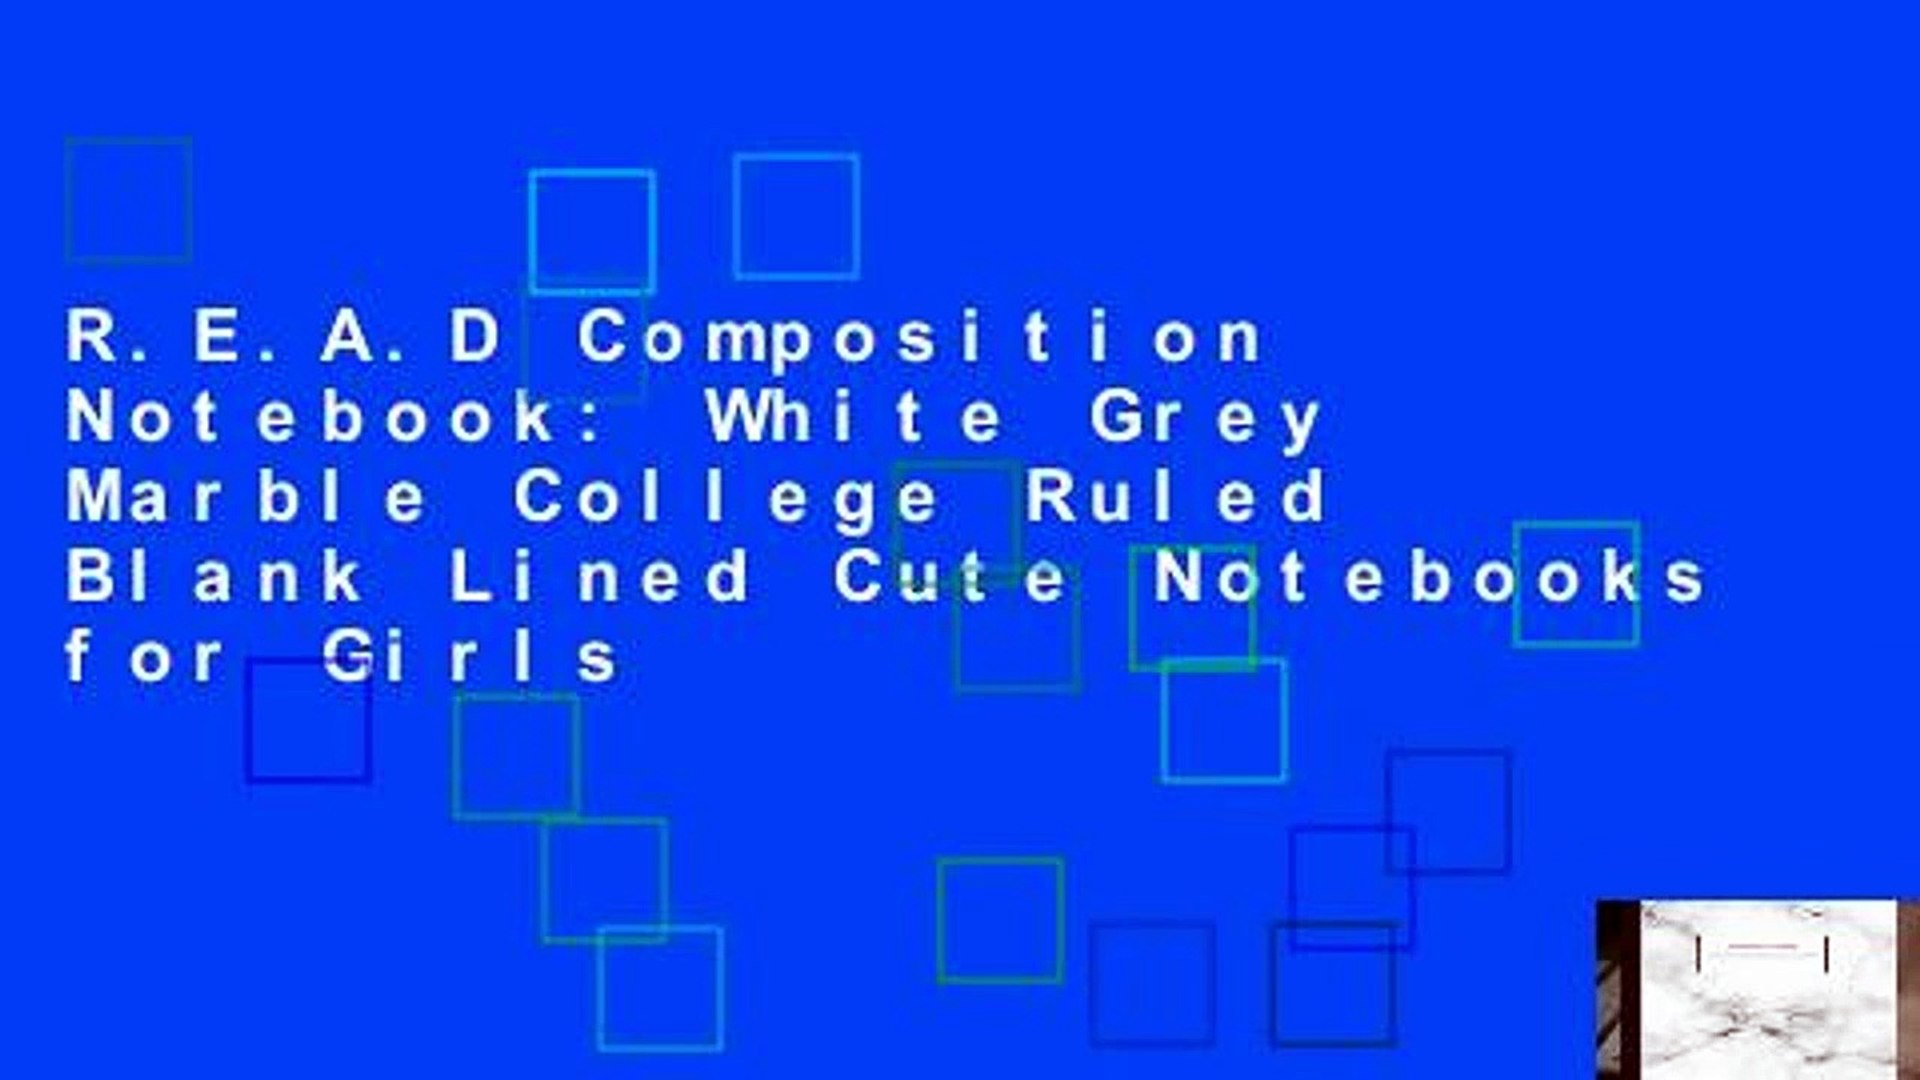 R.E.A.D Composition Notebook: White Grey Marble College Ruled Blank Lined Cute Notebooks for Girls